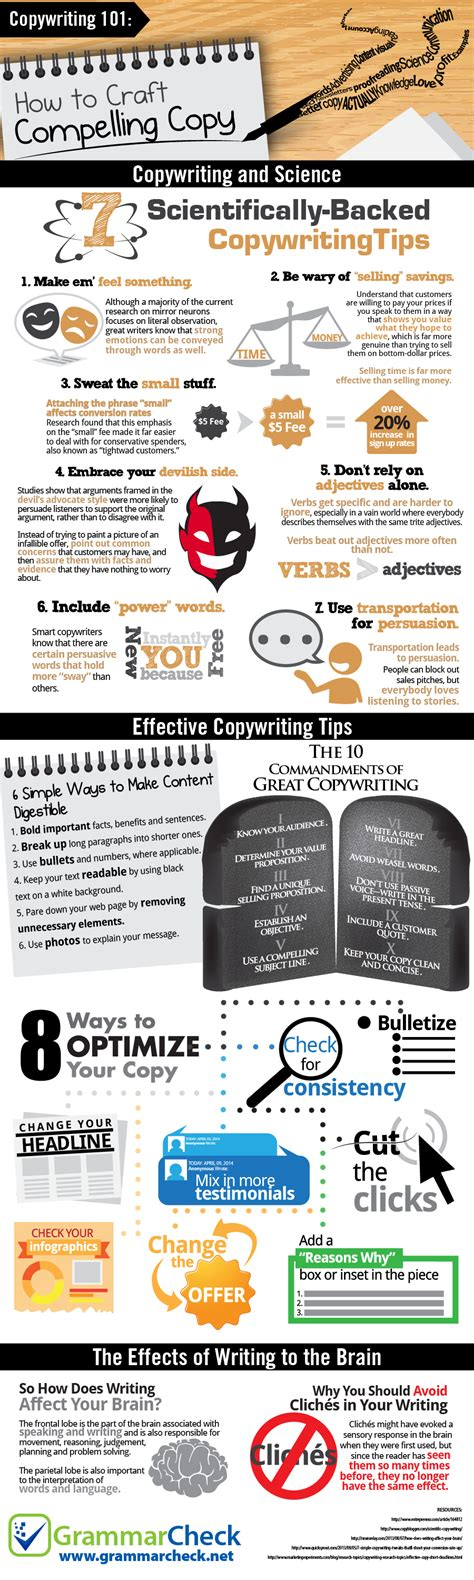 [click]copywriting 101 How To Craft Compelling Copy.